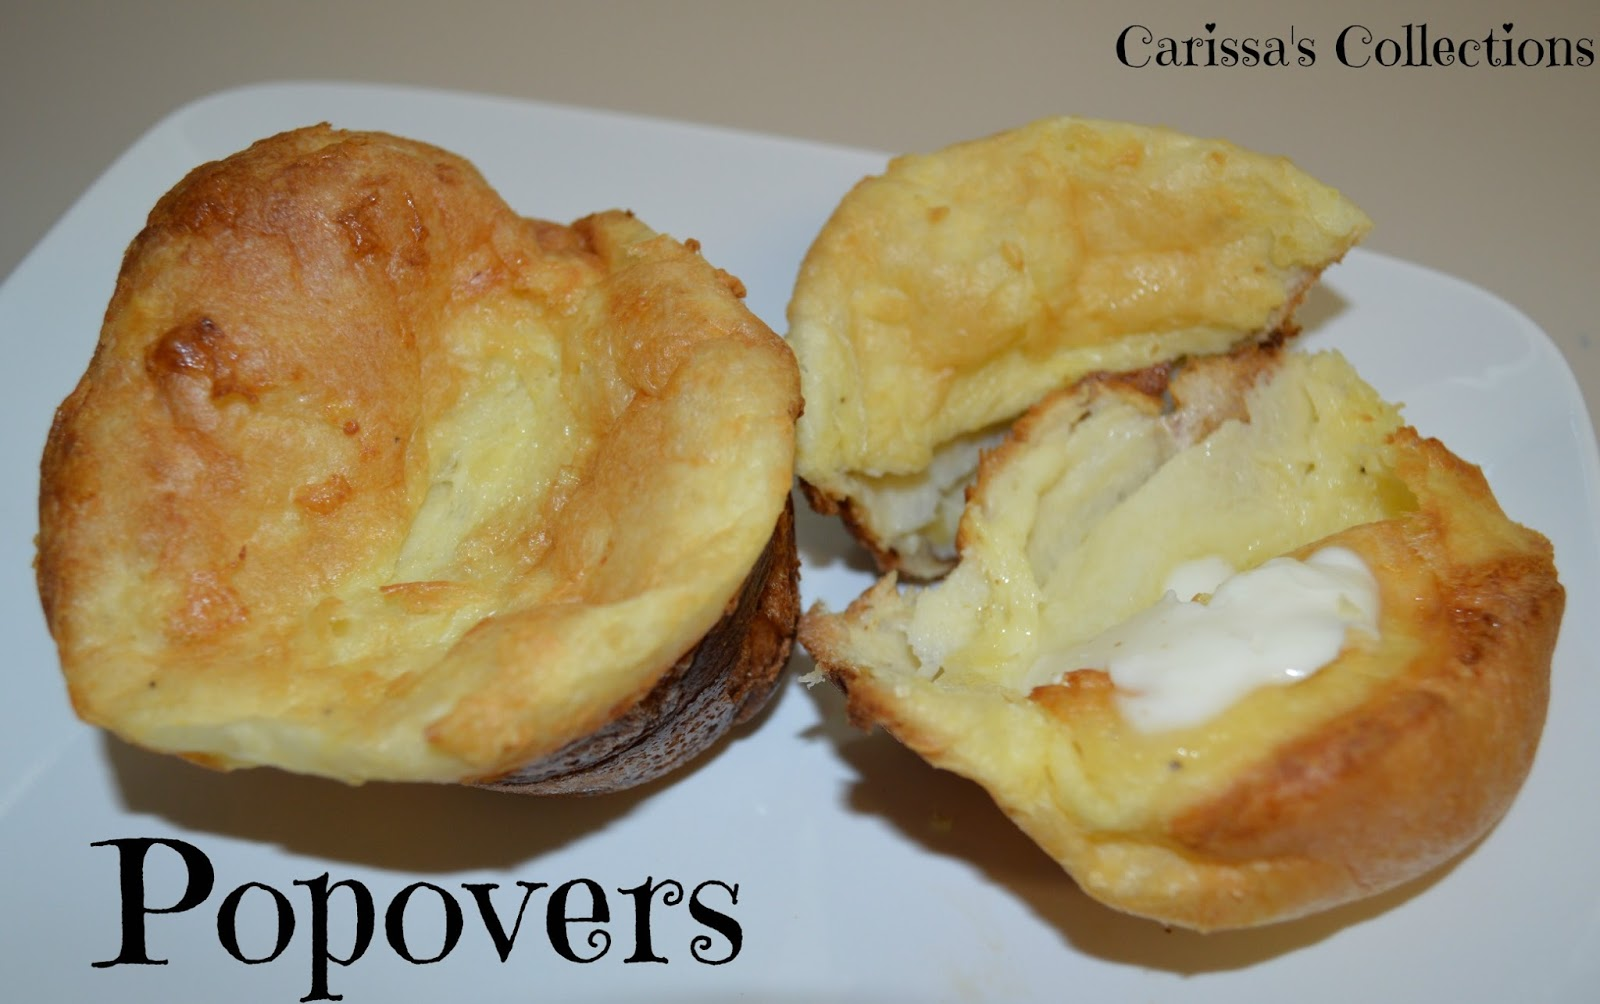 Carissa's Collections: Popovers